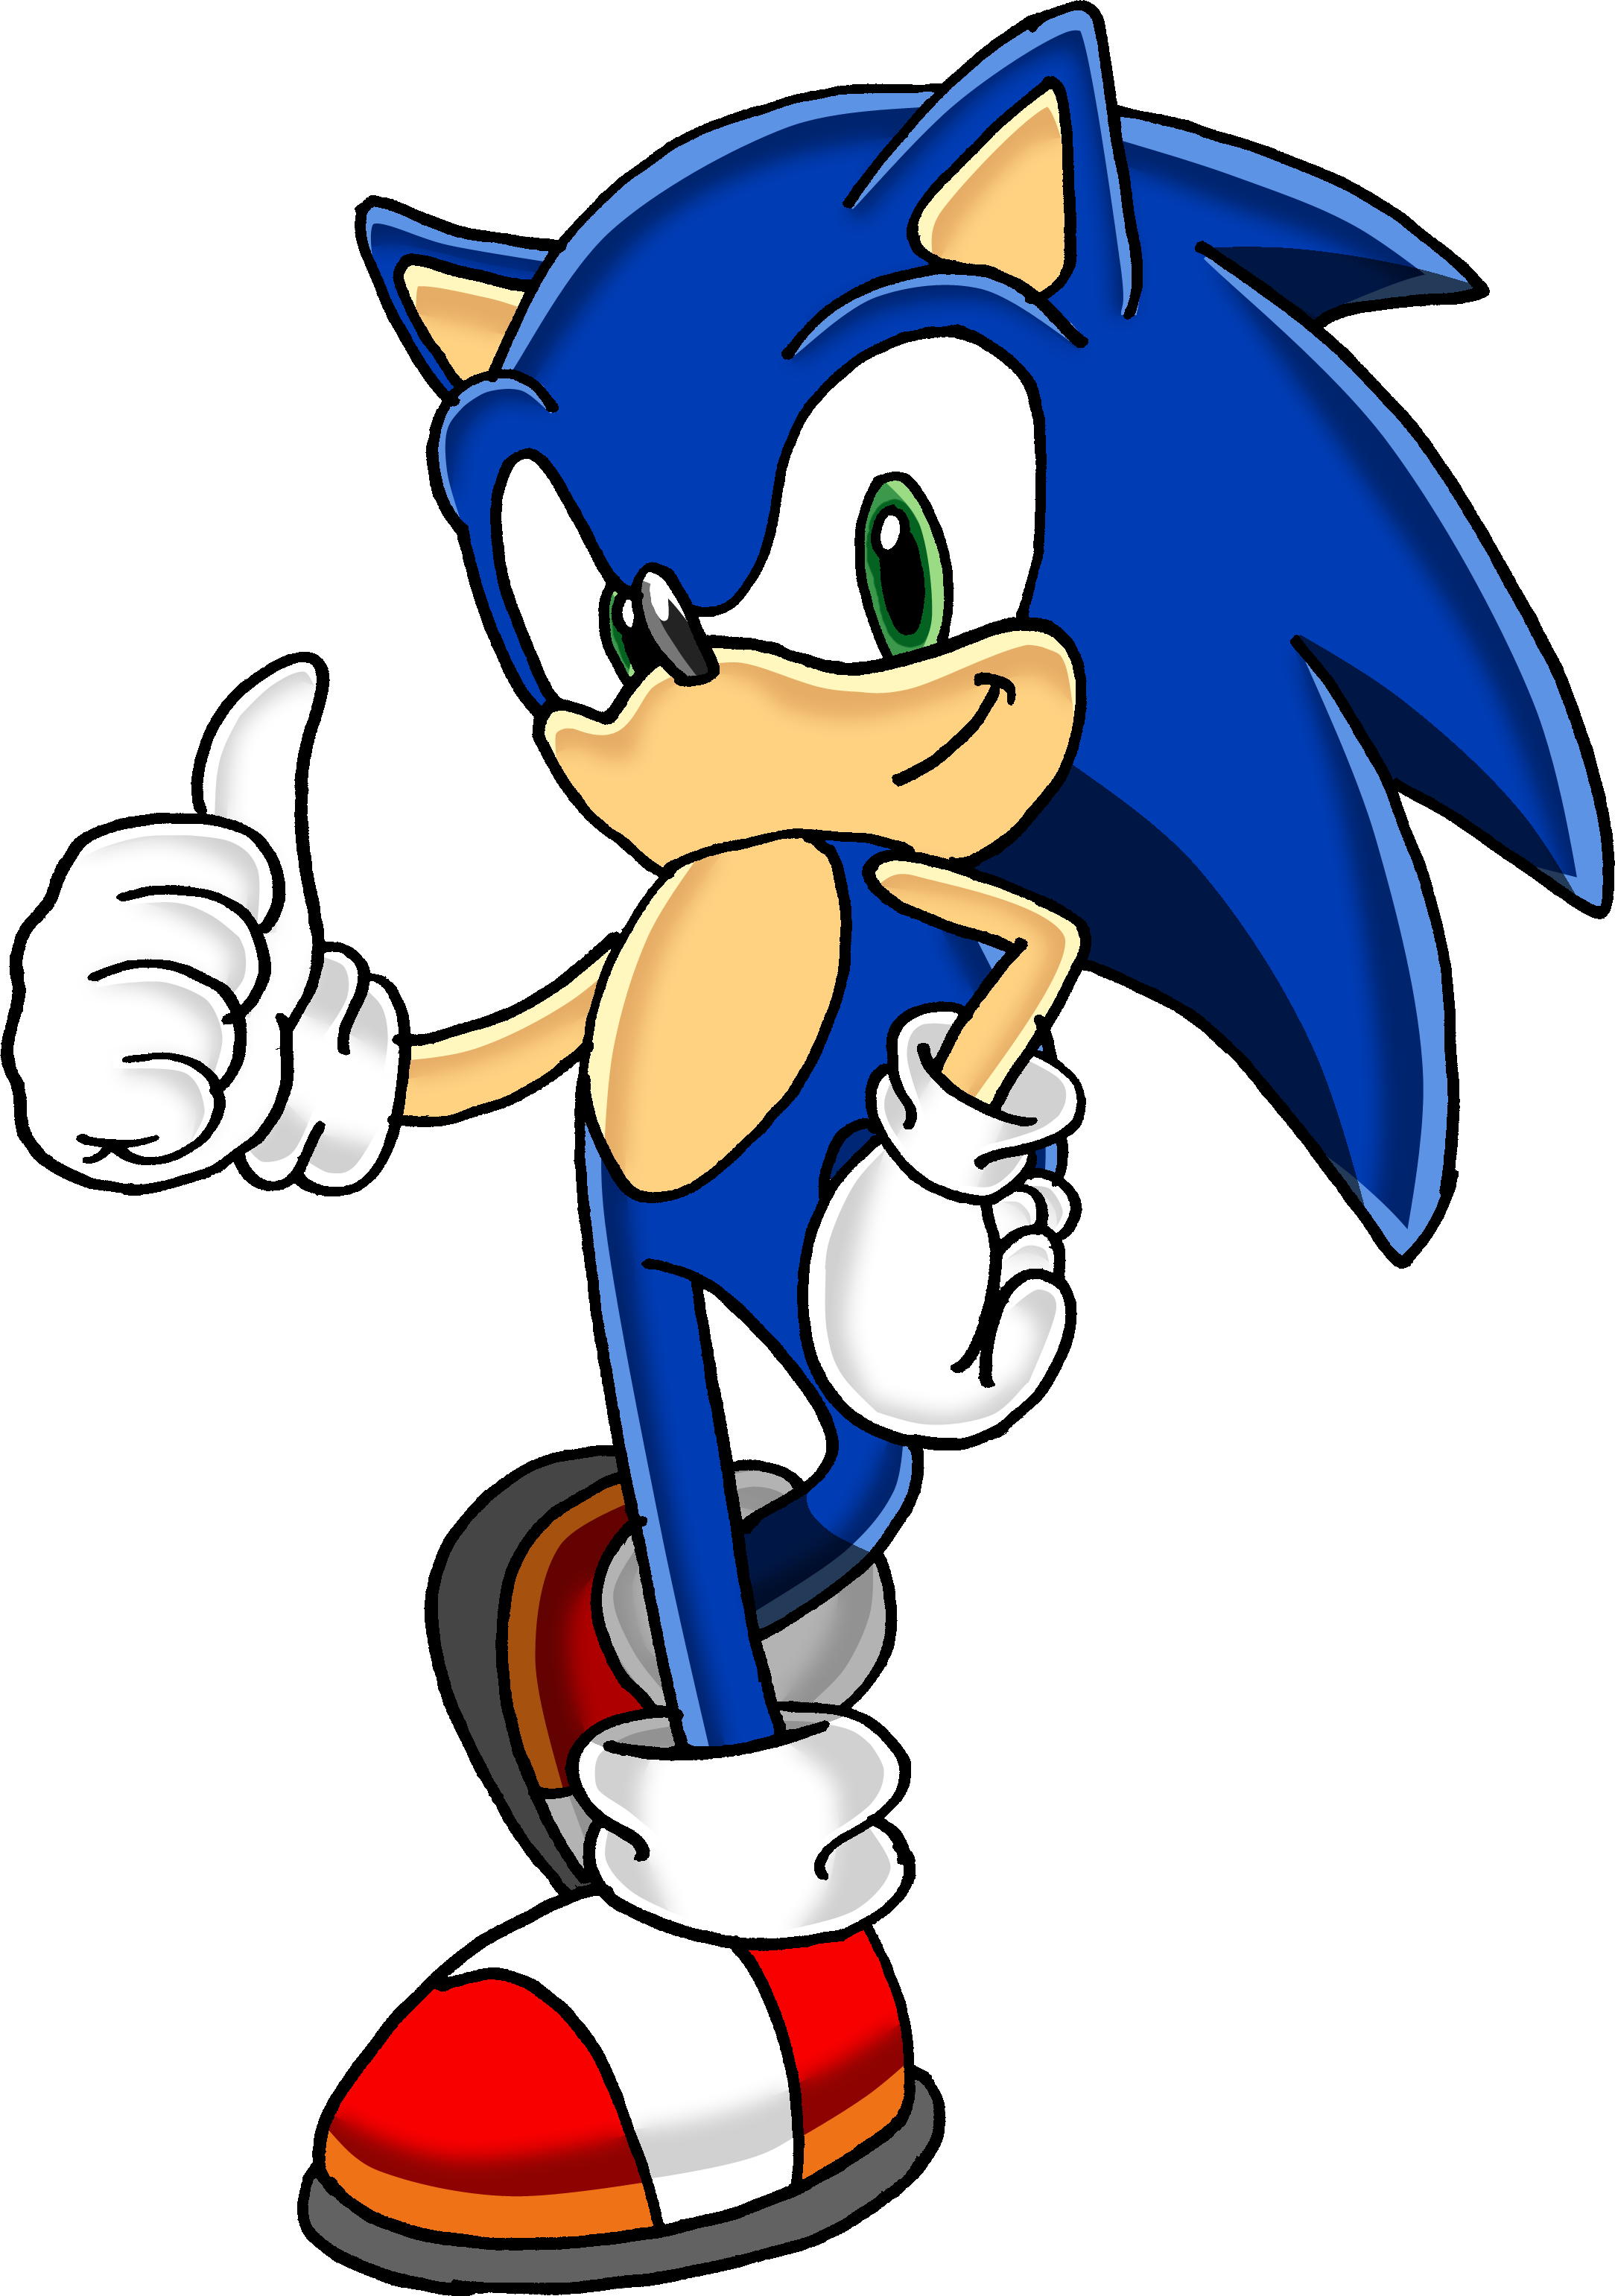 Sonic The Hedgehog Png 13 PNG Image - Sonic HD PNG